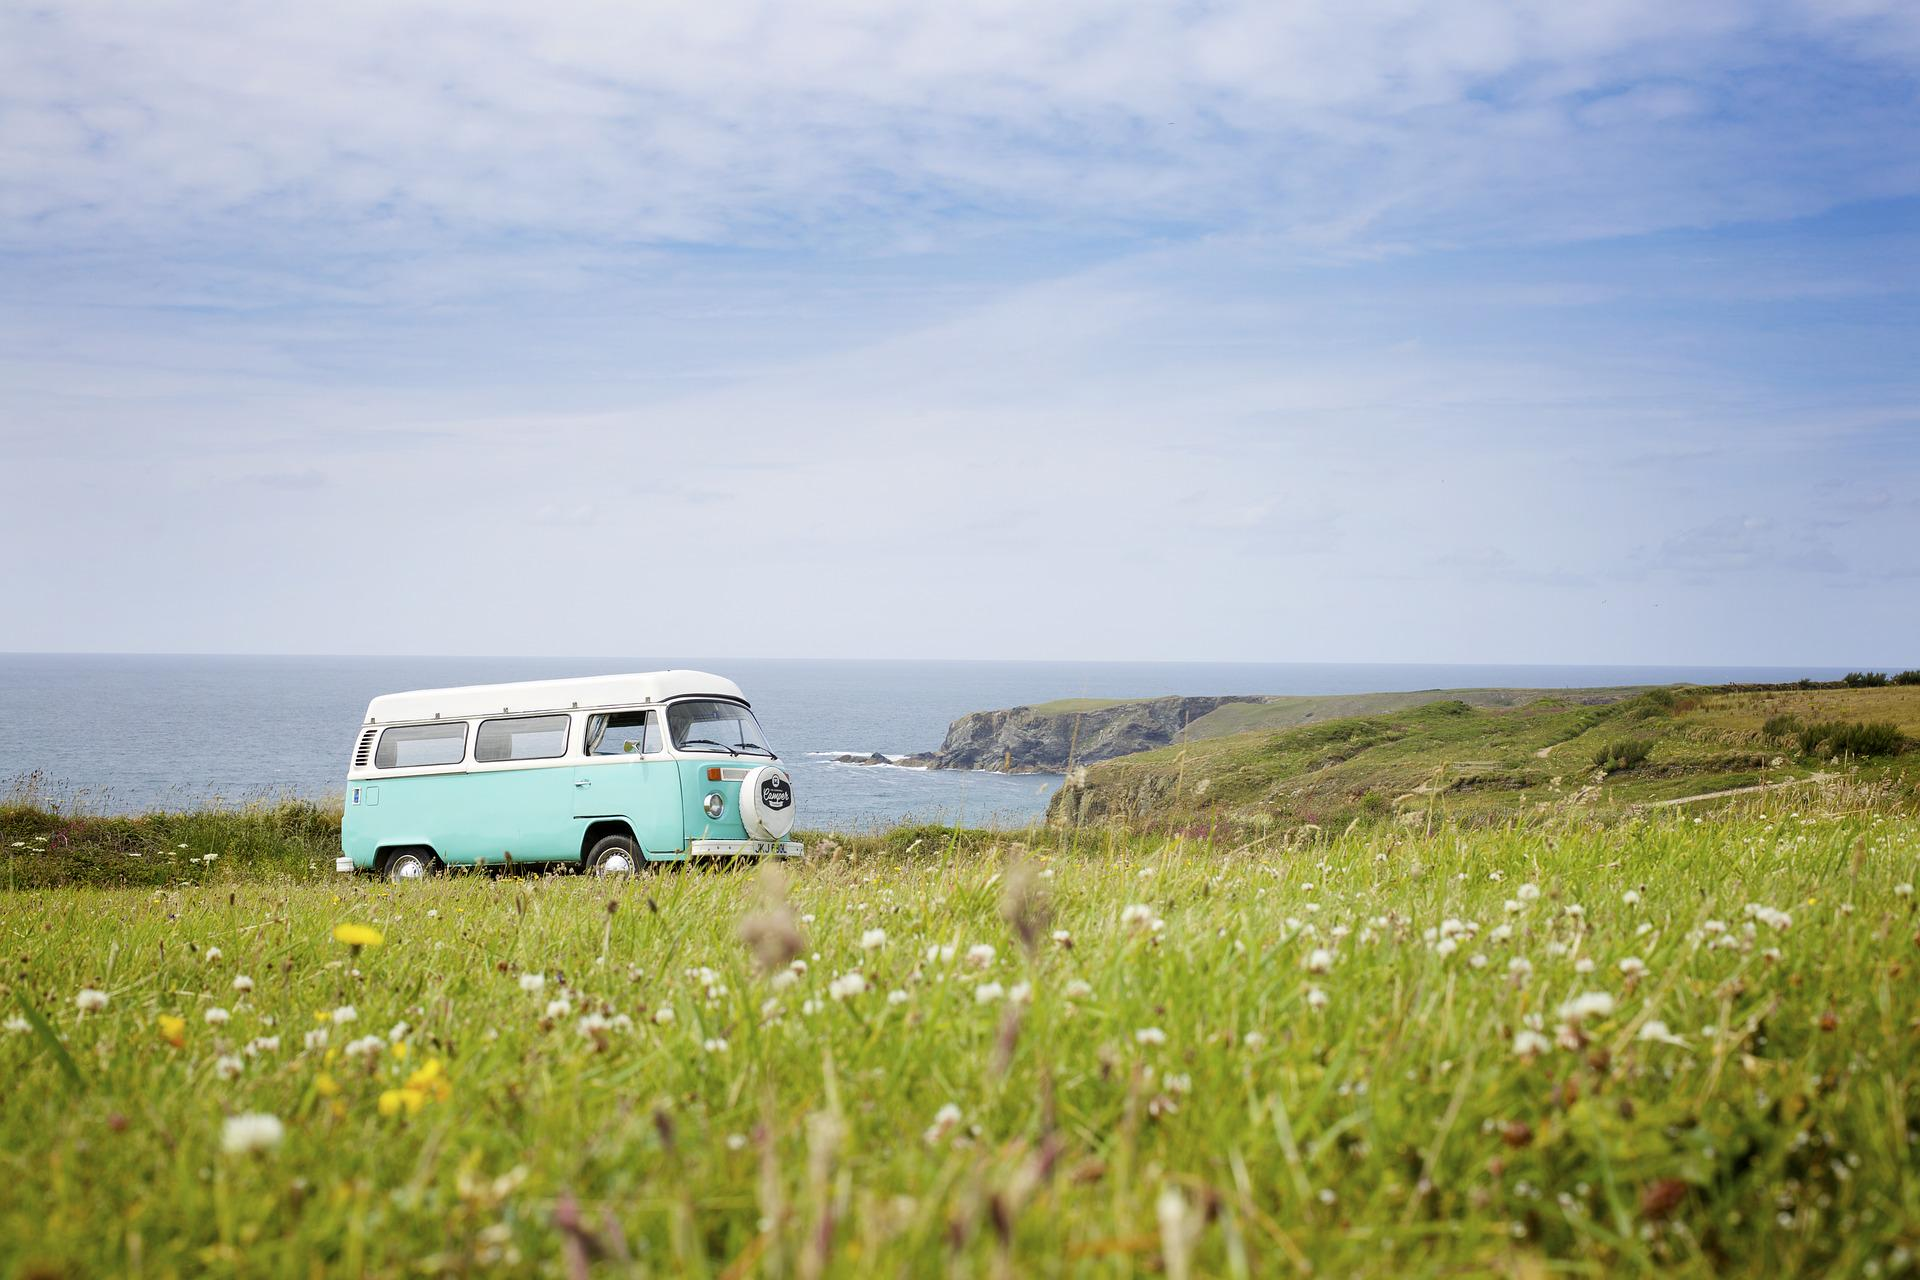 Campervan Hire In The UK, France, Spain & Italy | Rent A Campervan For Your Next Holiday